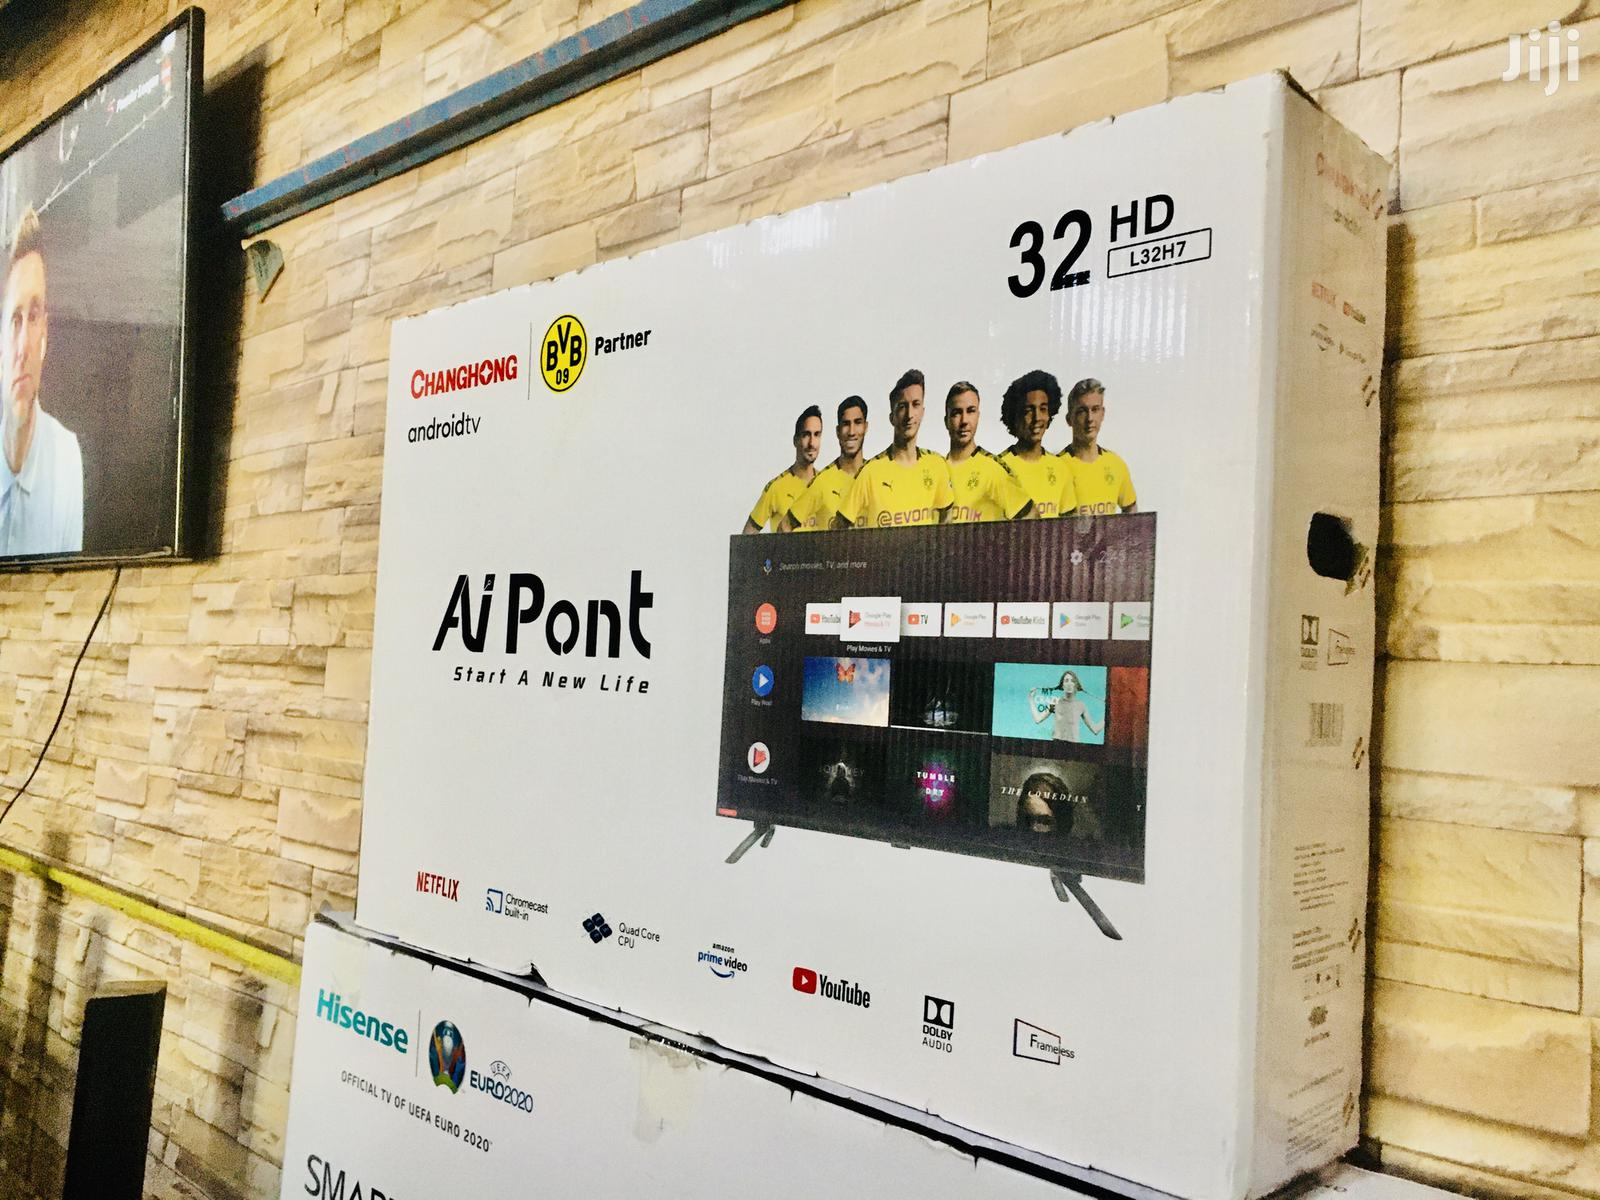 Changhong 32 Smart Android Tv | TV & DVD Equipment for sale in Kampala, Central Region, Uganda